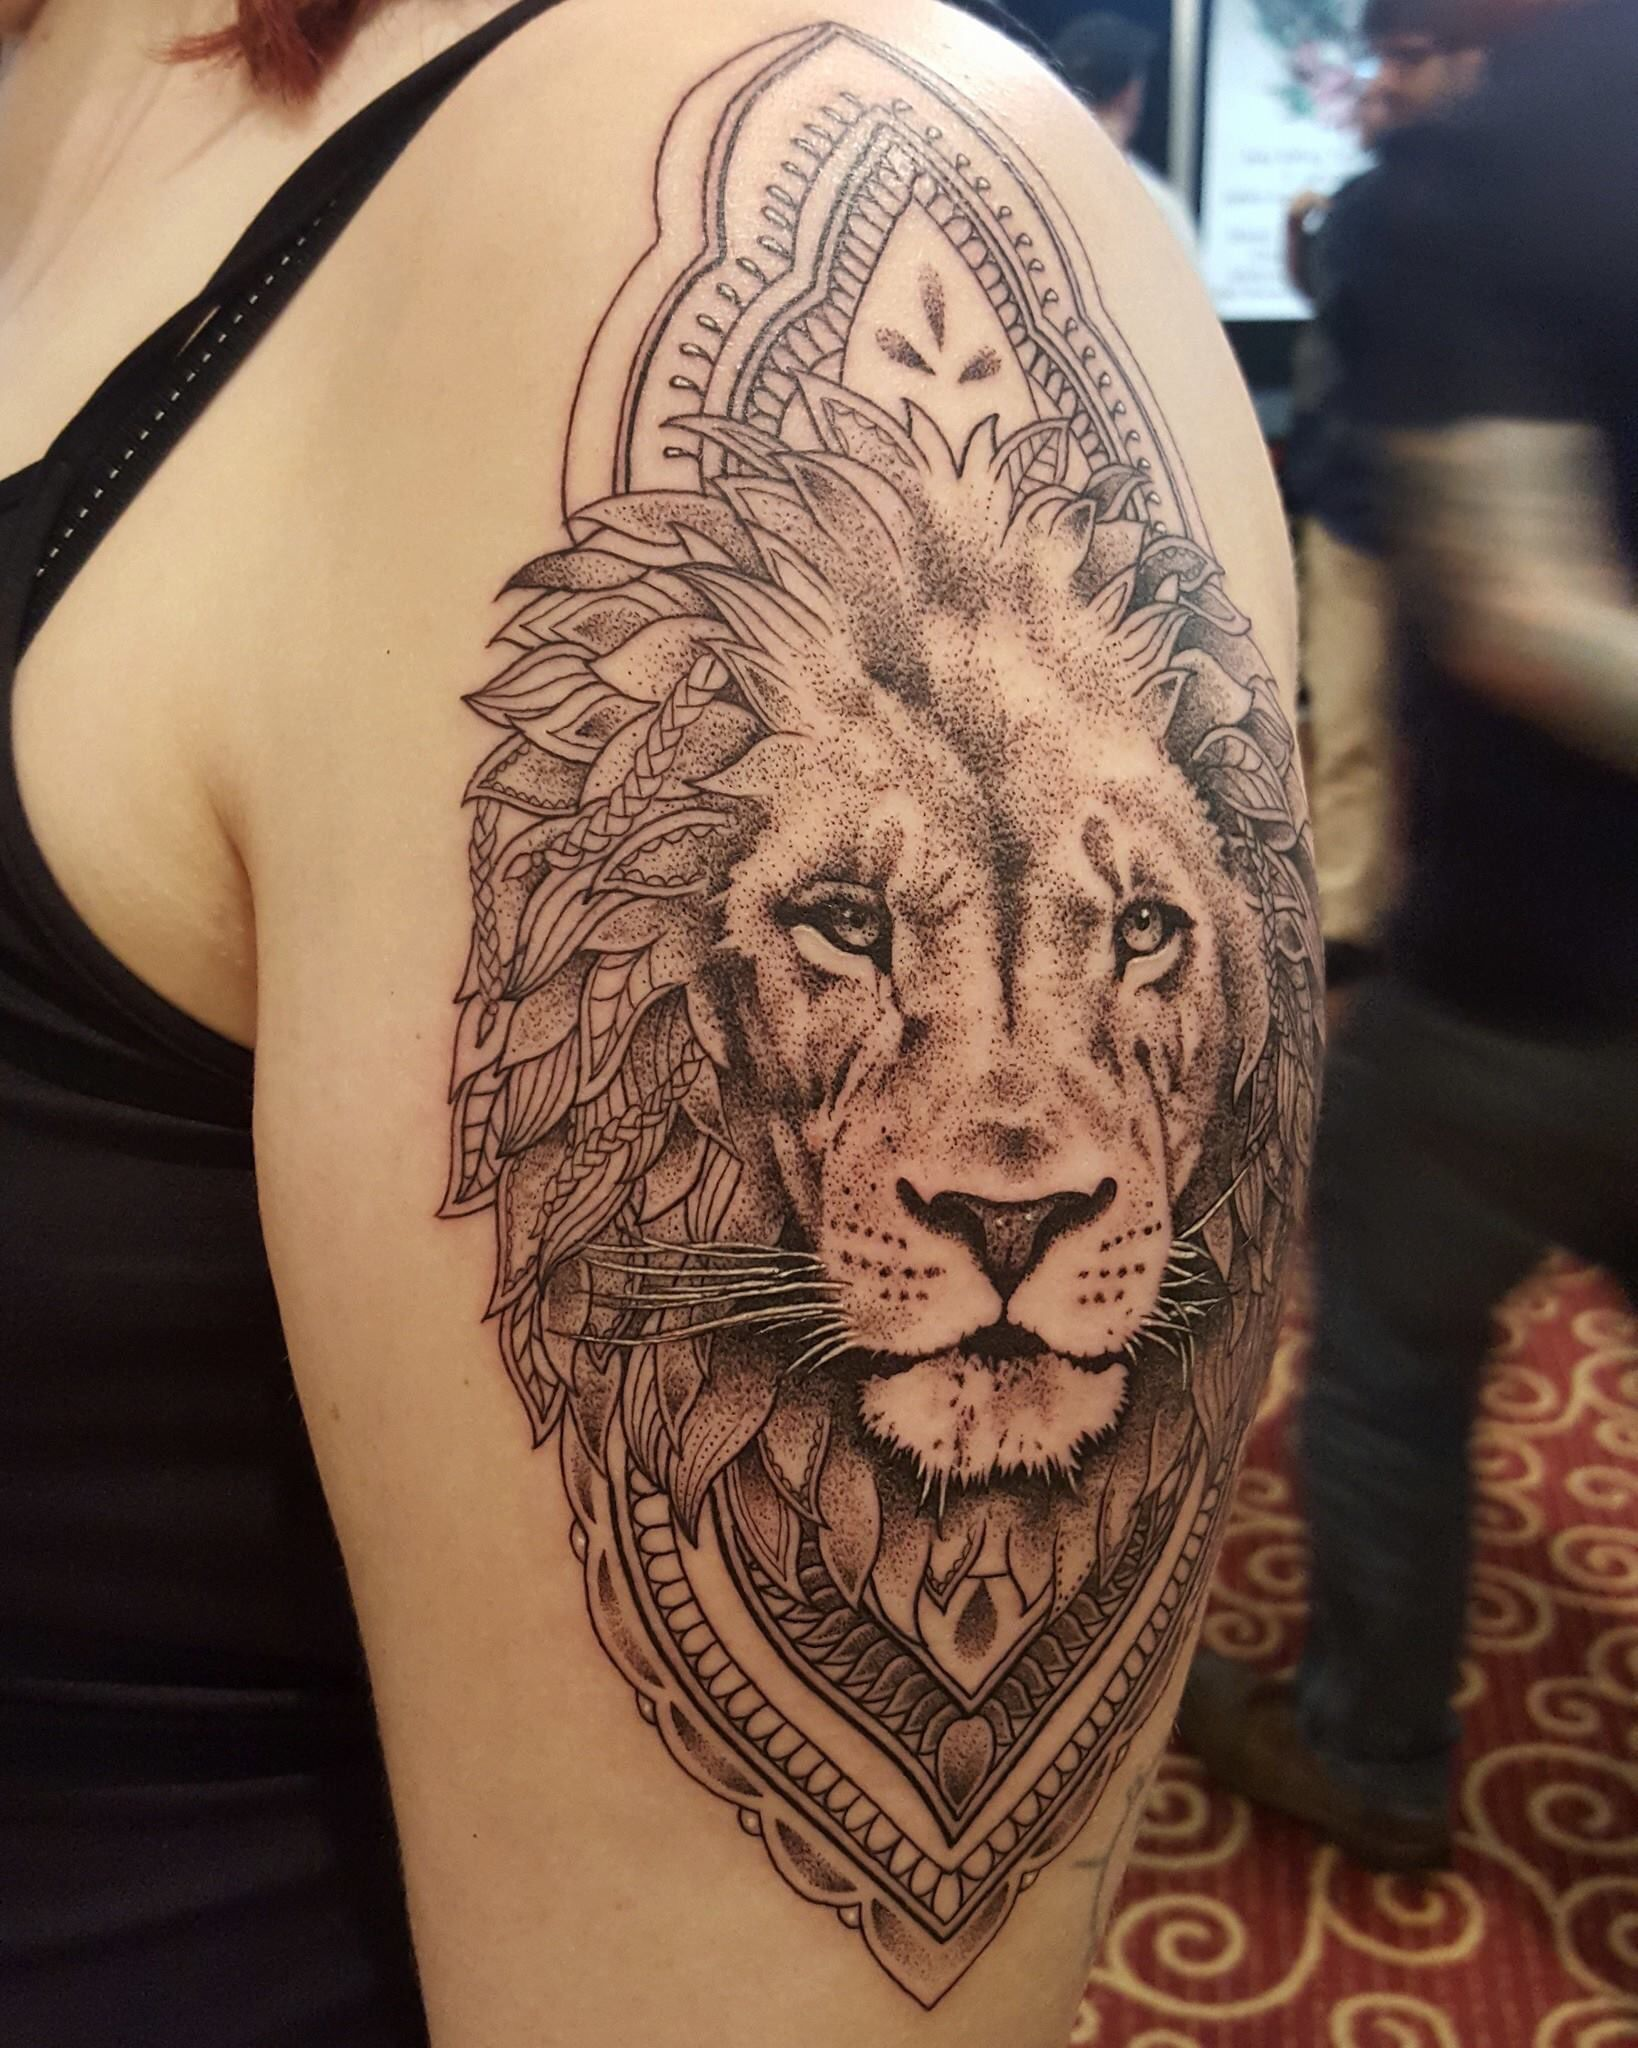 dotwork lion tattoo from bournemouth tattoo convention | inked